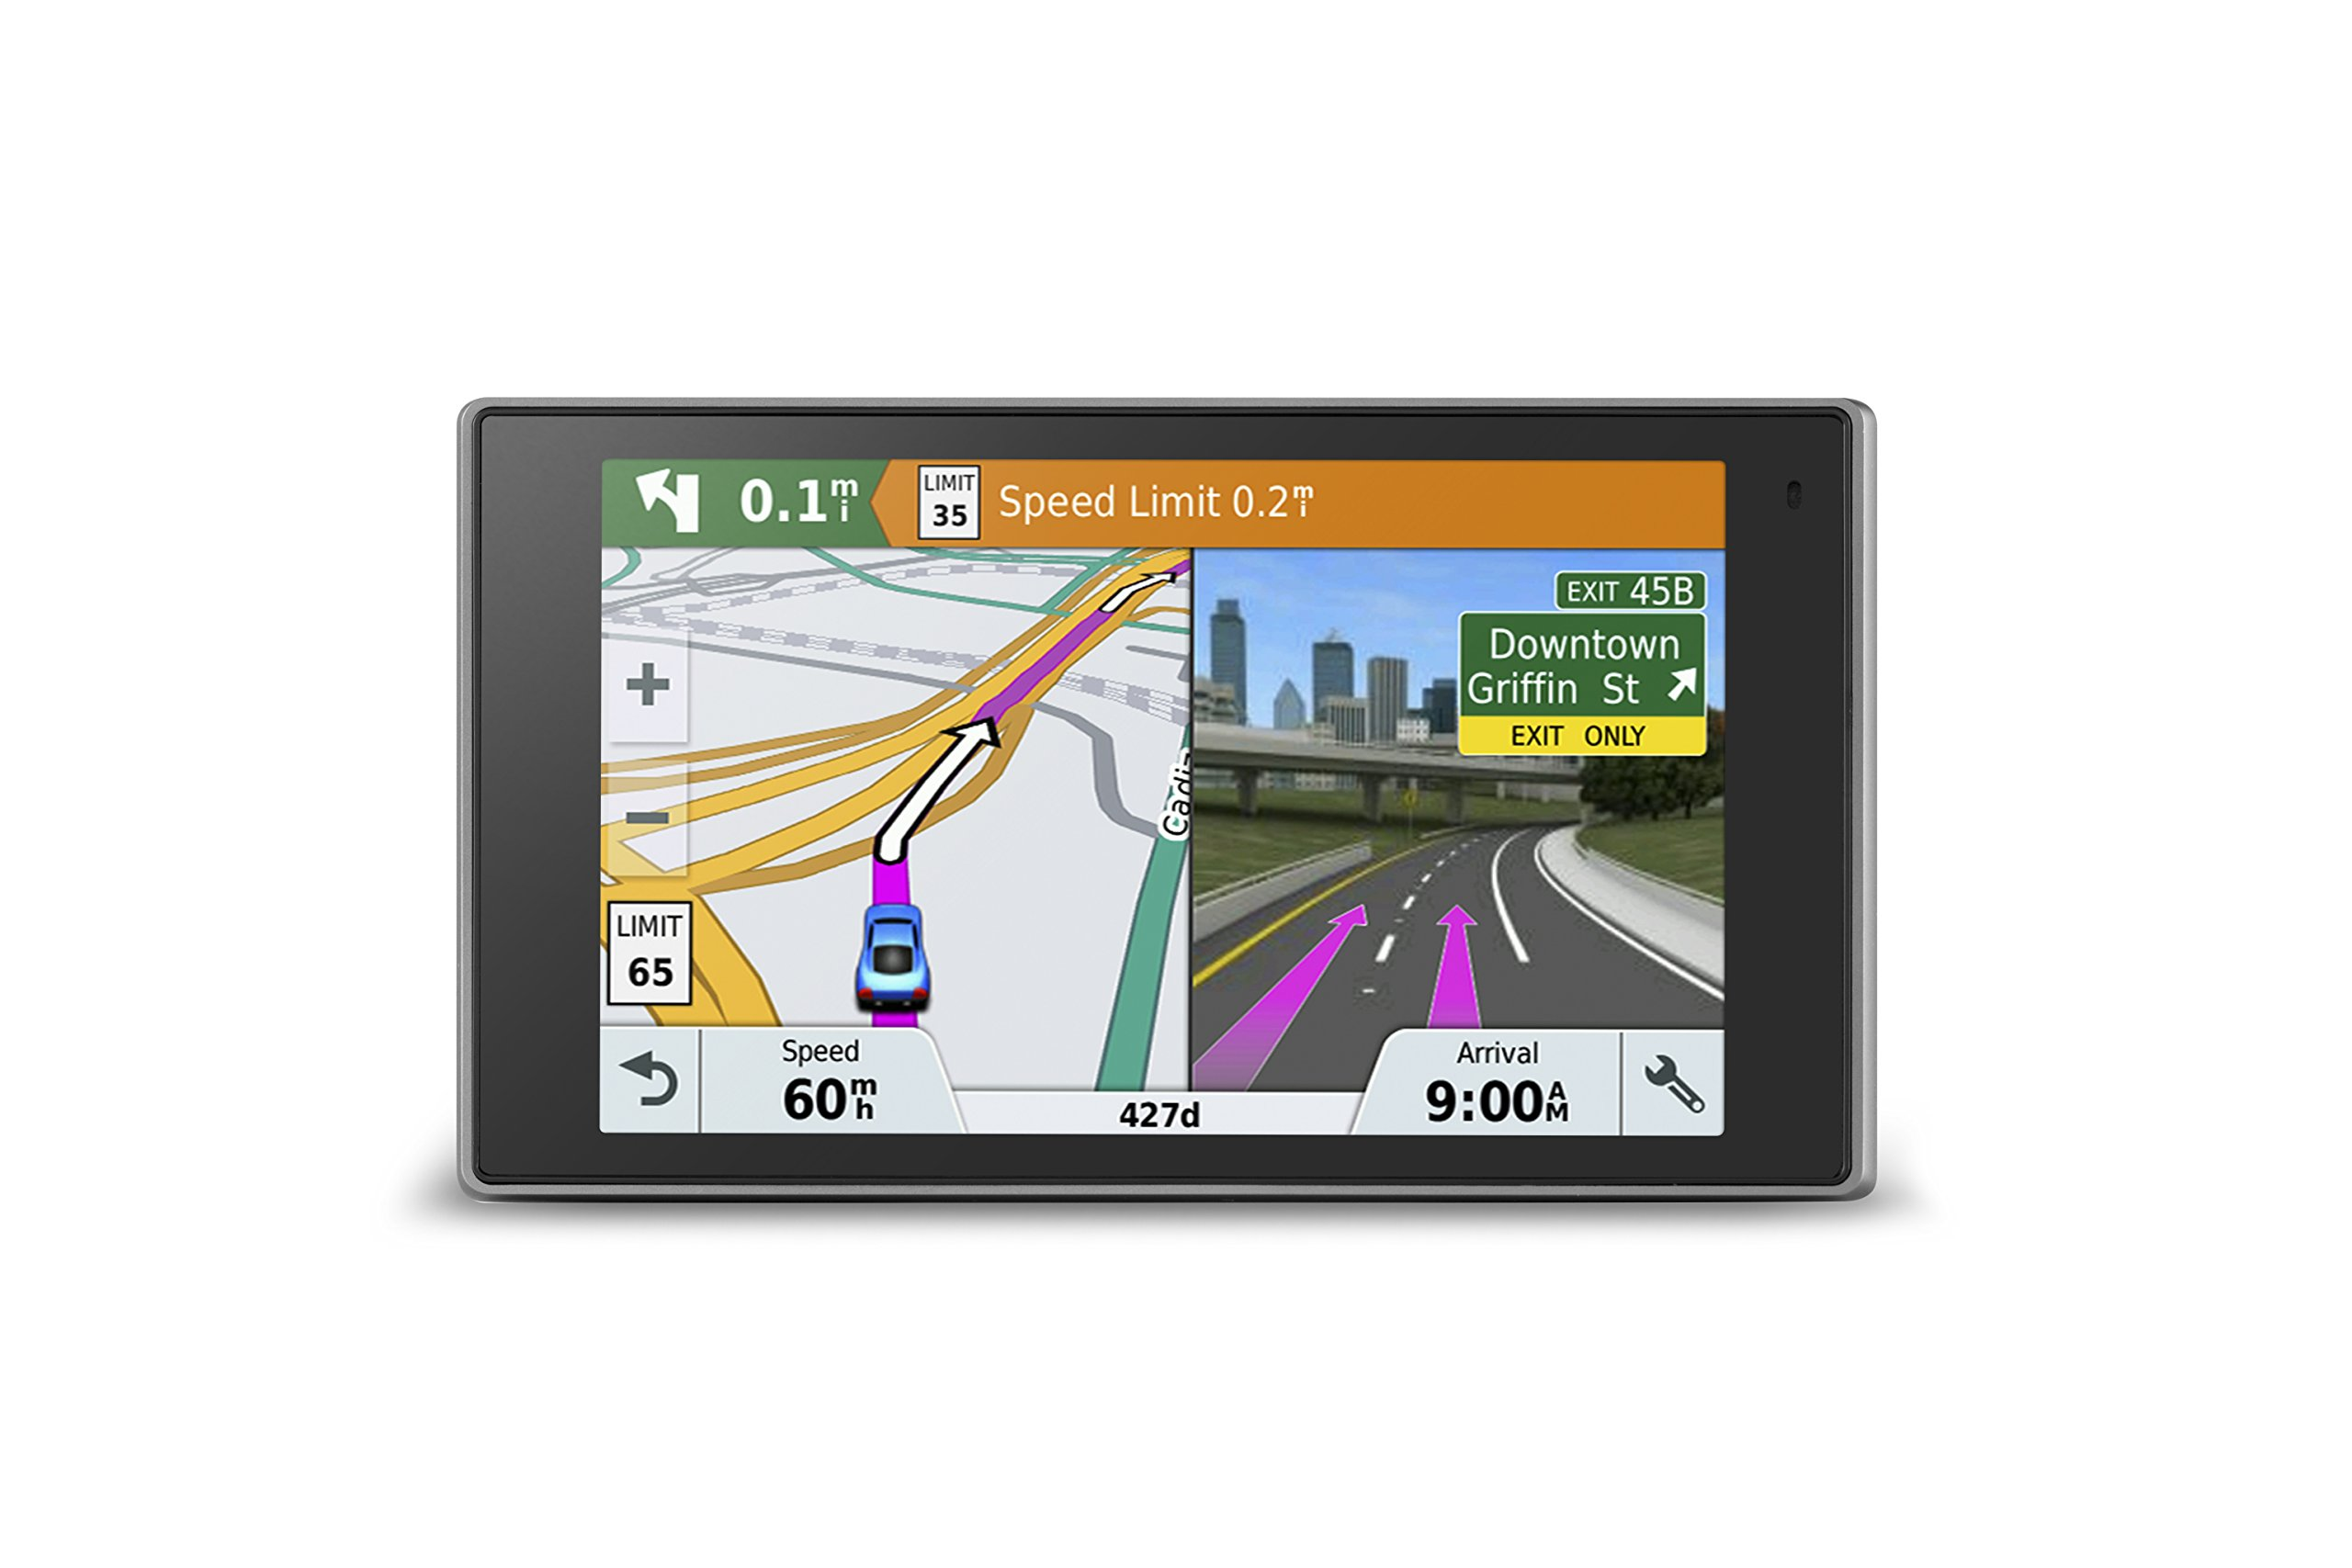 Garmin DriveLuxe 51 NA LMT-S with Lifetime Maps/Traffic, Live Parking, Bluetooth, WiFi, Smart Notifications, Voice Activation, Driver Alerts, TripAdvisor, Foursquare by Garmin